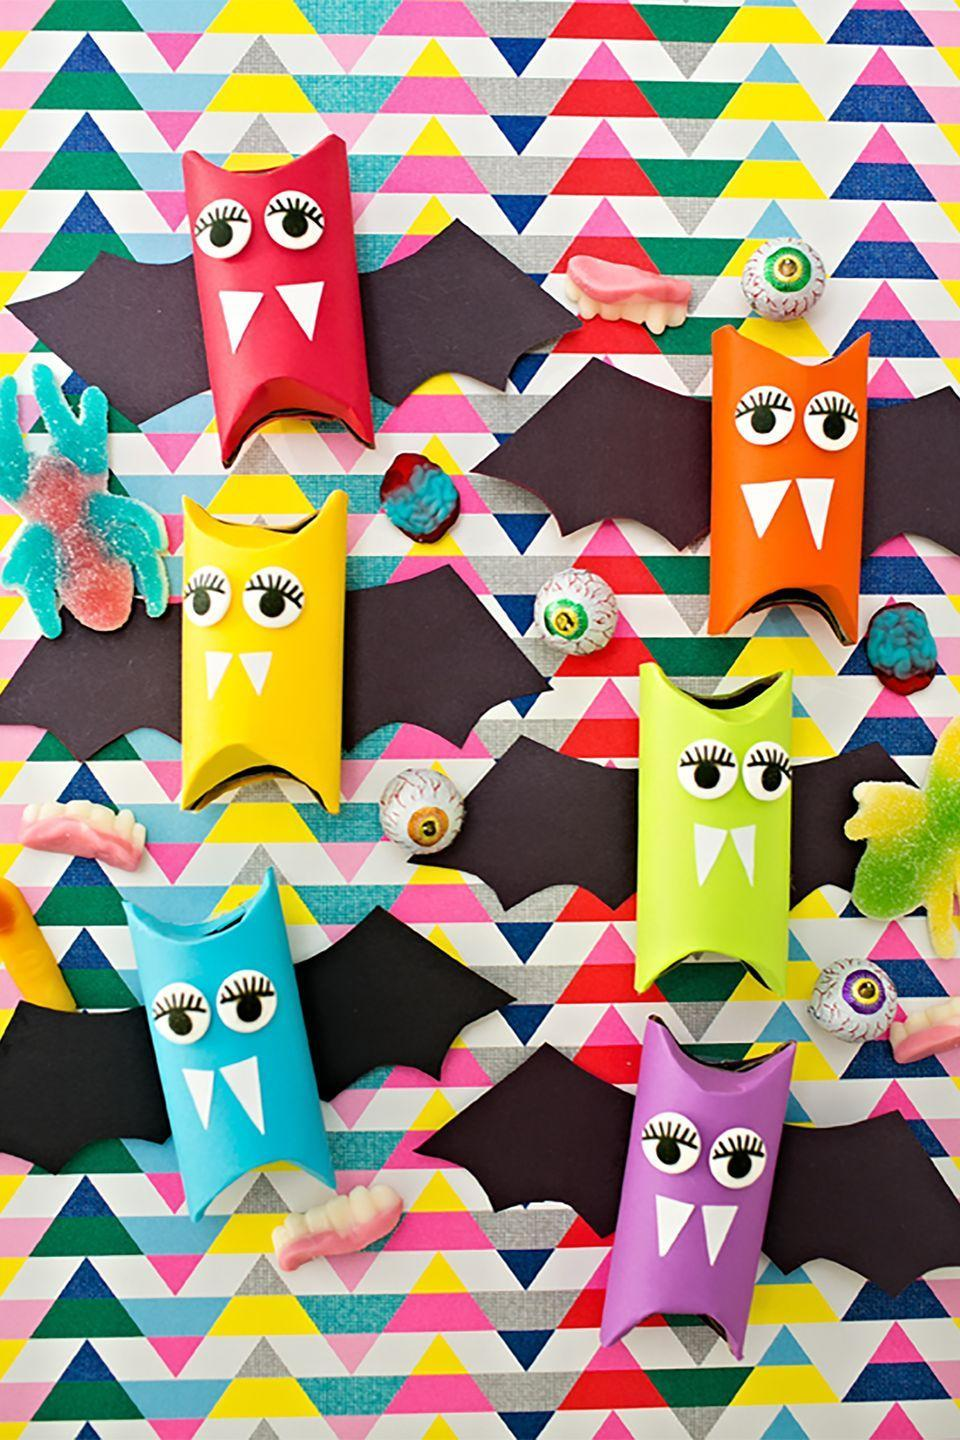 """<p>These colorful creatures are filled with goodies that will make kids go absolutely batty. </p><p><strong>Get the tutorial at <a href=""""https://www.hellowonderful.co/post/RAINBOW-PAPER-TUBE-BATS--HALLOWEEN-CRAFT-FOR-KIDS"""" rel=""""nofollow noopener"""" target=""""_blank"""" data-ylk=""""slk:Hello, Wonderful"""" class=""""link rapid-noclick-resp"""">Hello, Wonderful</a>.</strong> </p>"""